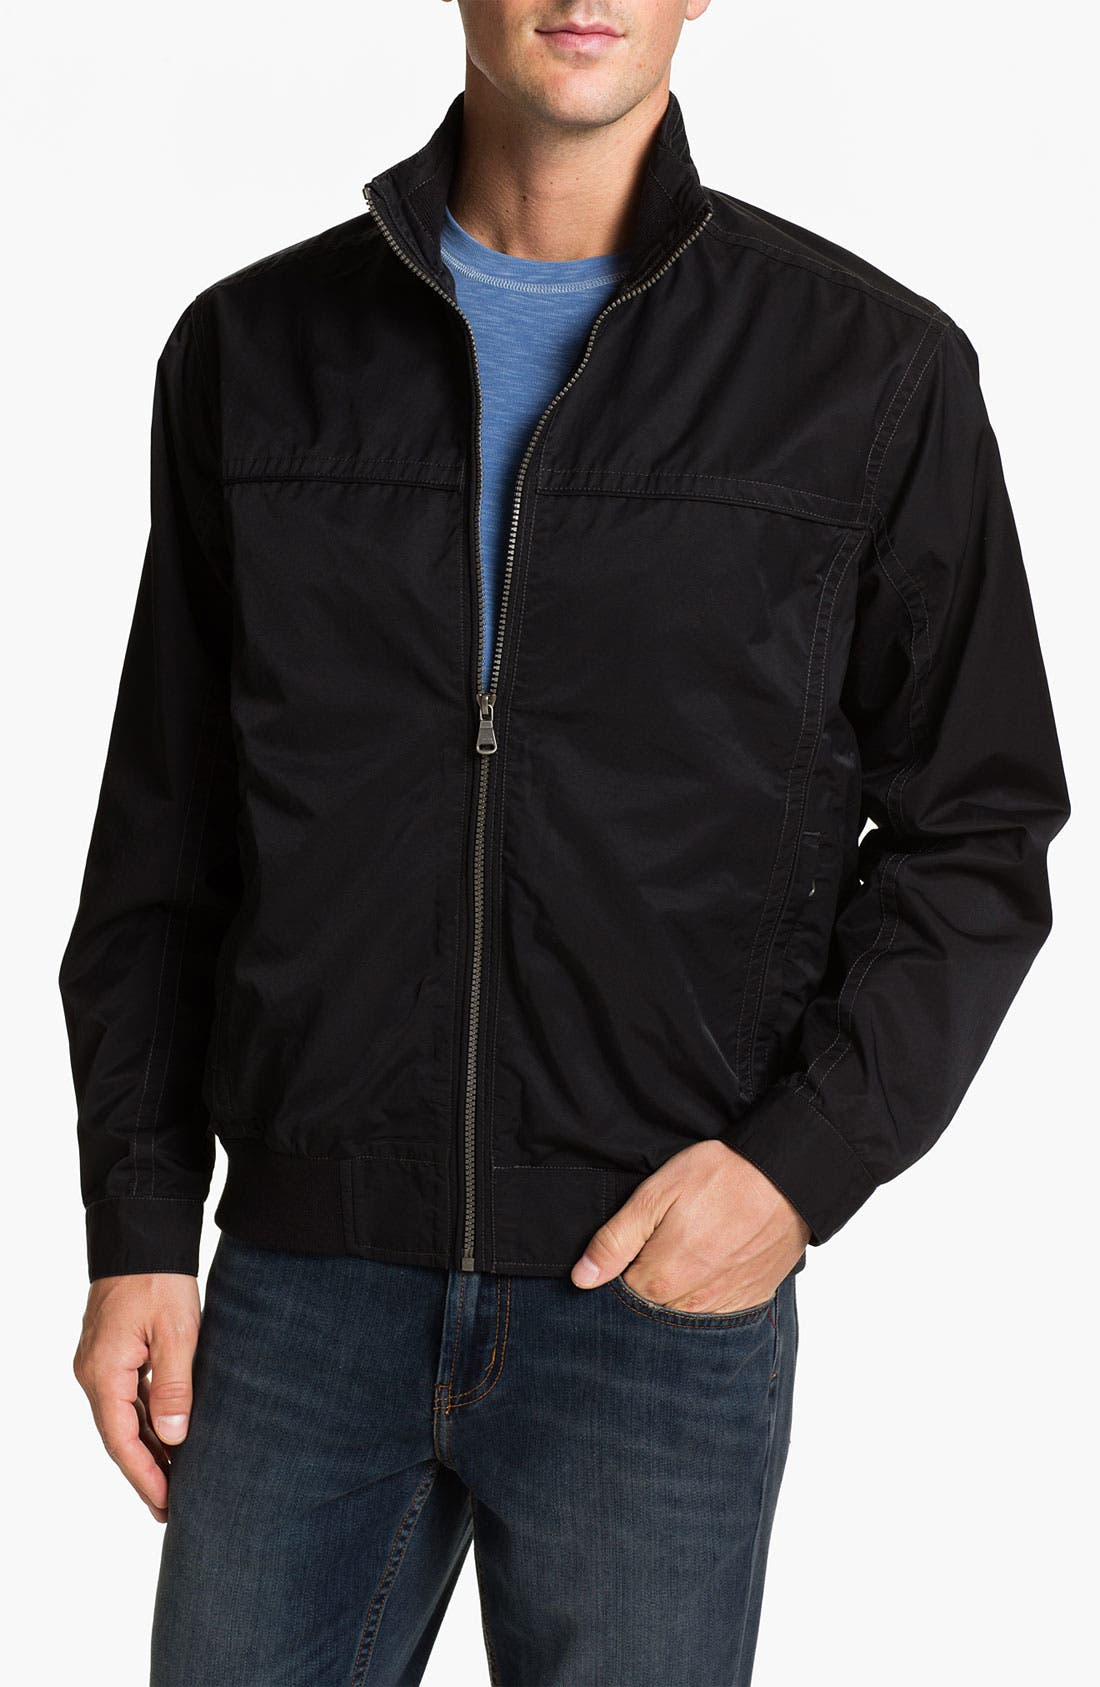 Main Image - Tommy Bahama 'Eisenhower' Jacket